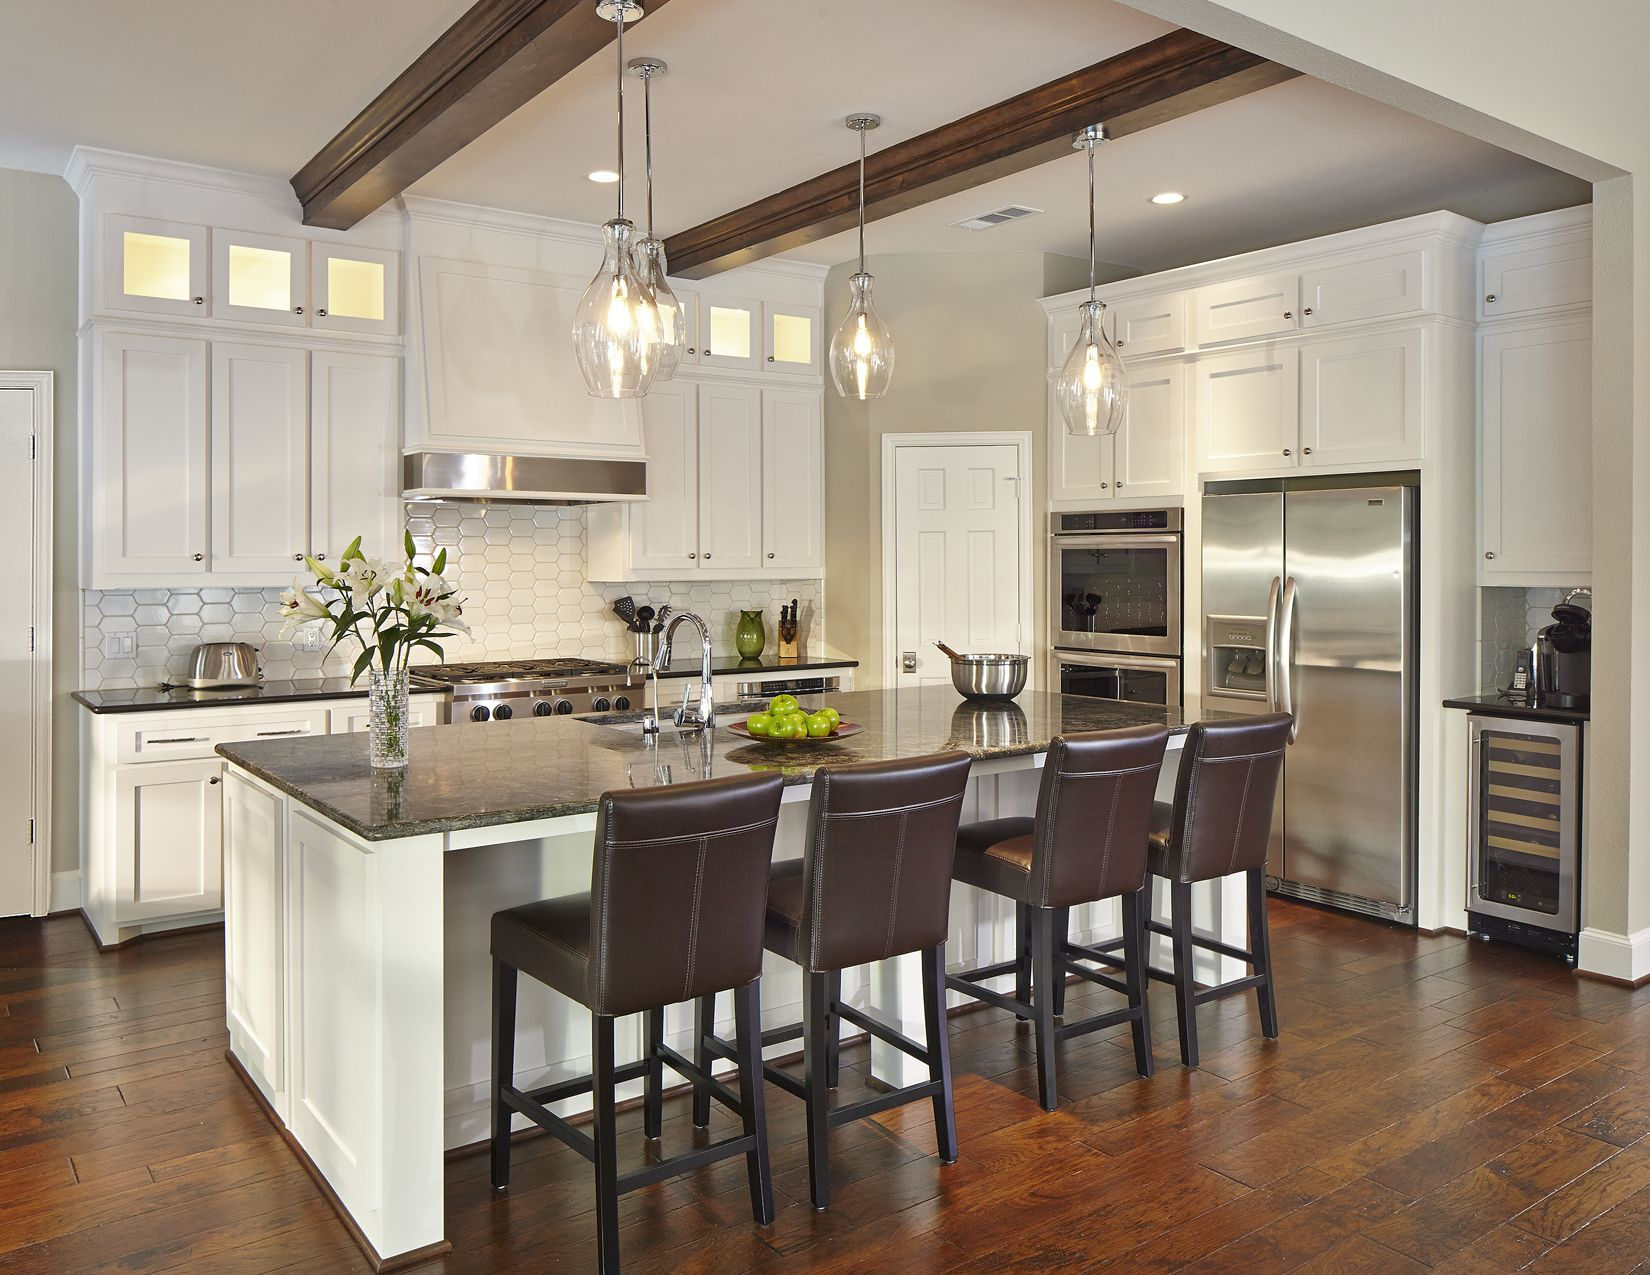 Dallas Kitchen Design Fascinating Usi Remodeling  2014 Nari Dallas Contractor Of The Year  Kitchen Inspiration